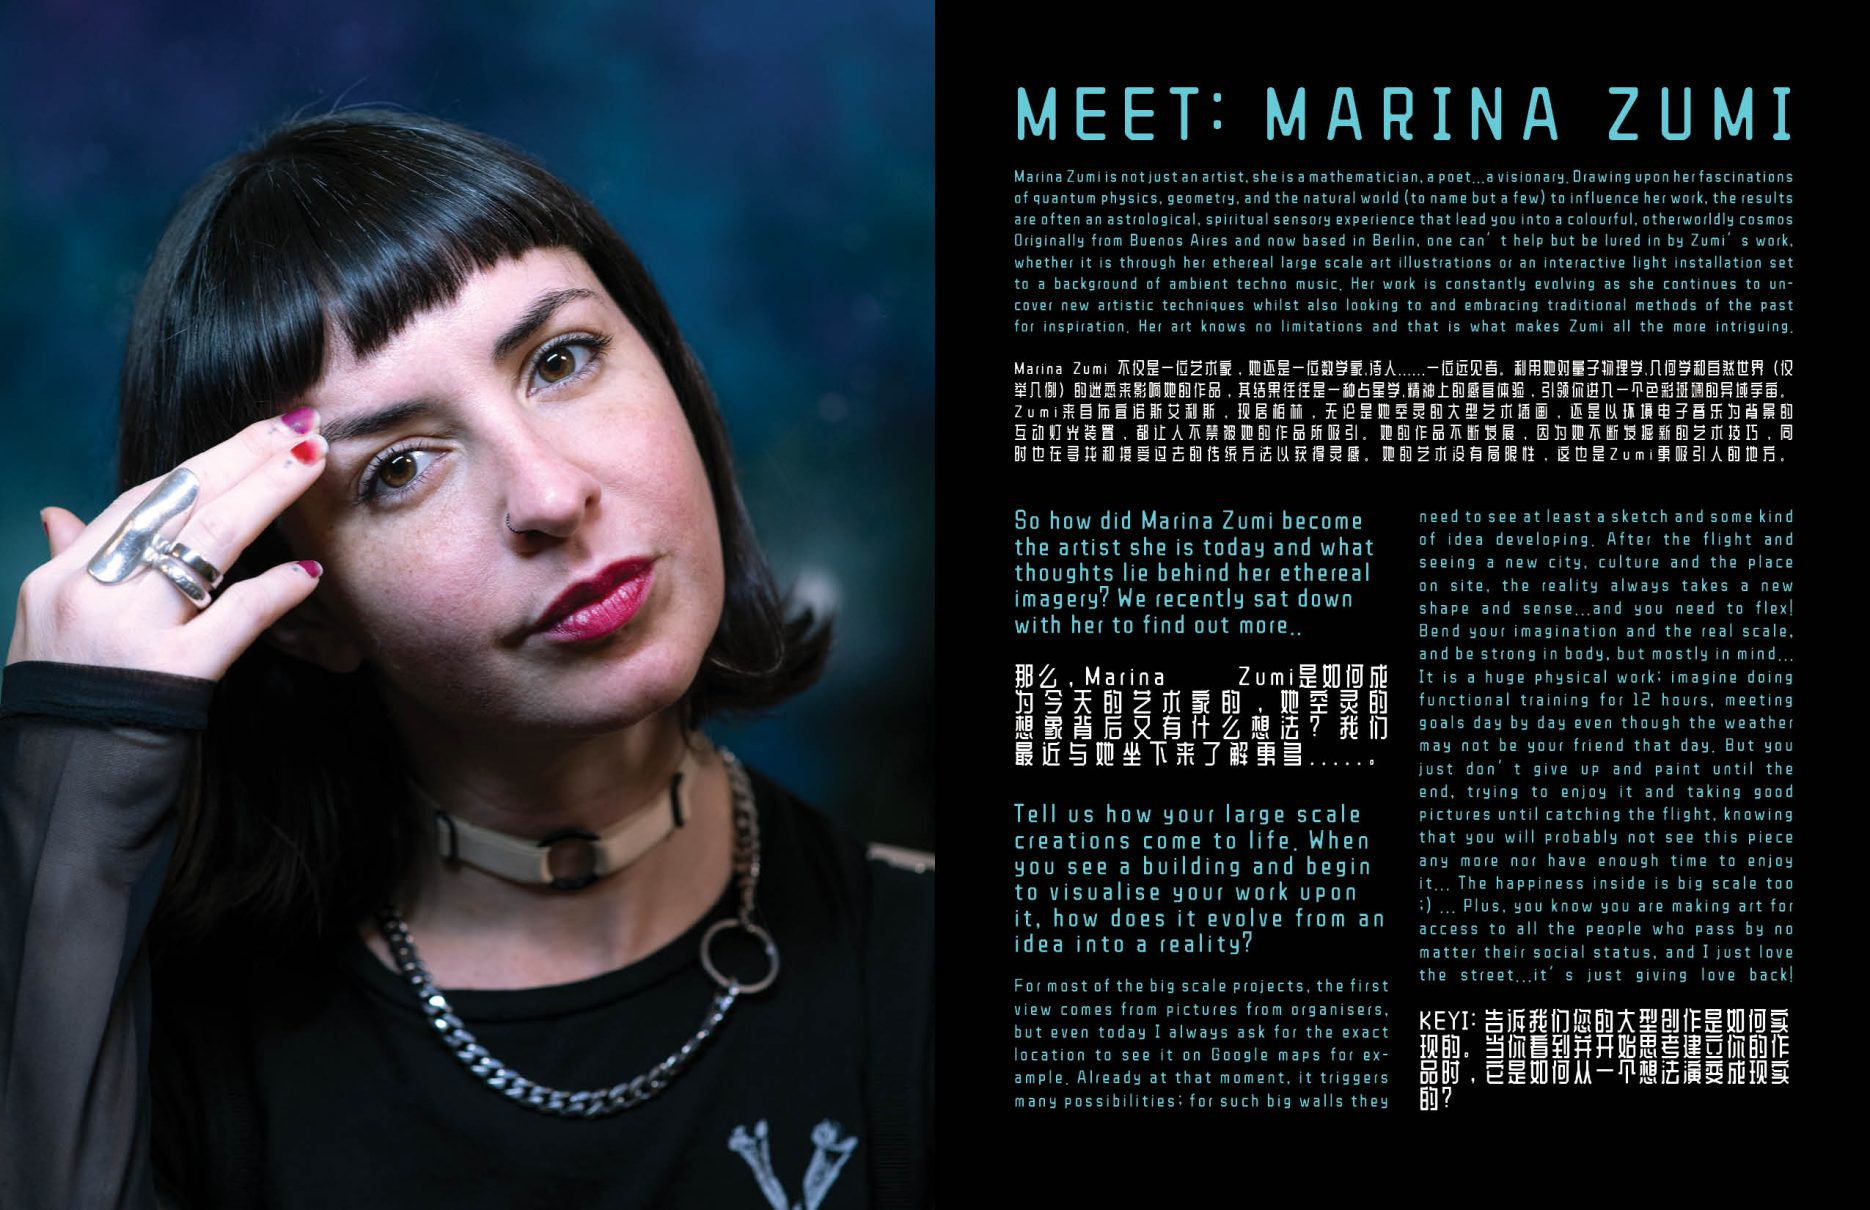 Marina Zumi interview by Hazel Rycraft and photos by KEYI Studio